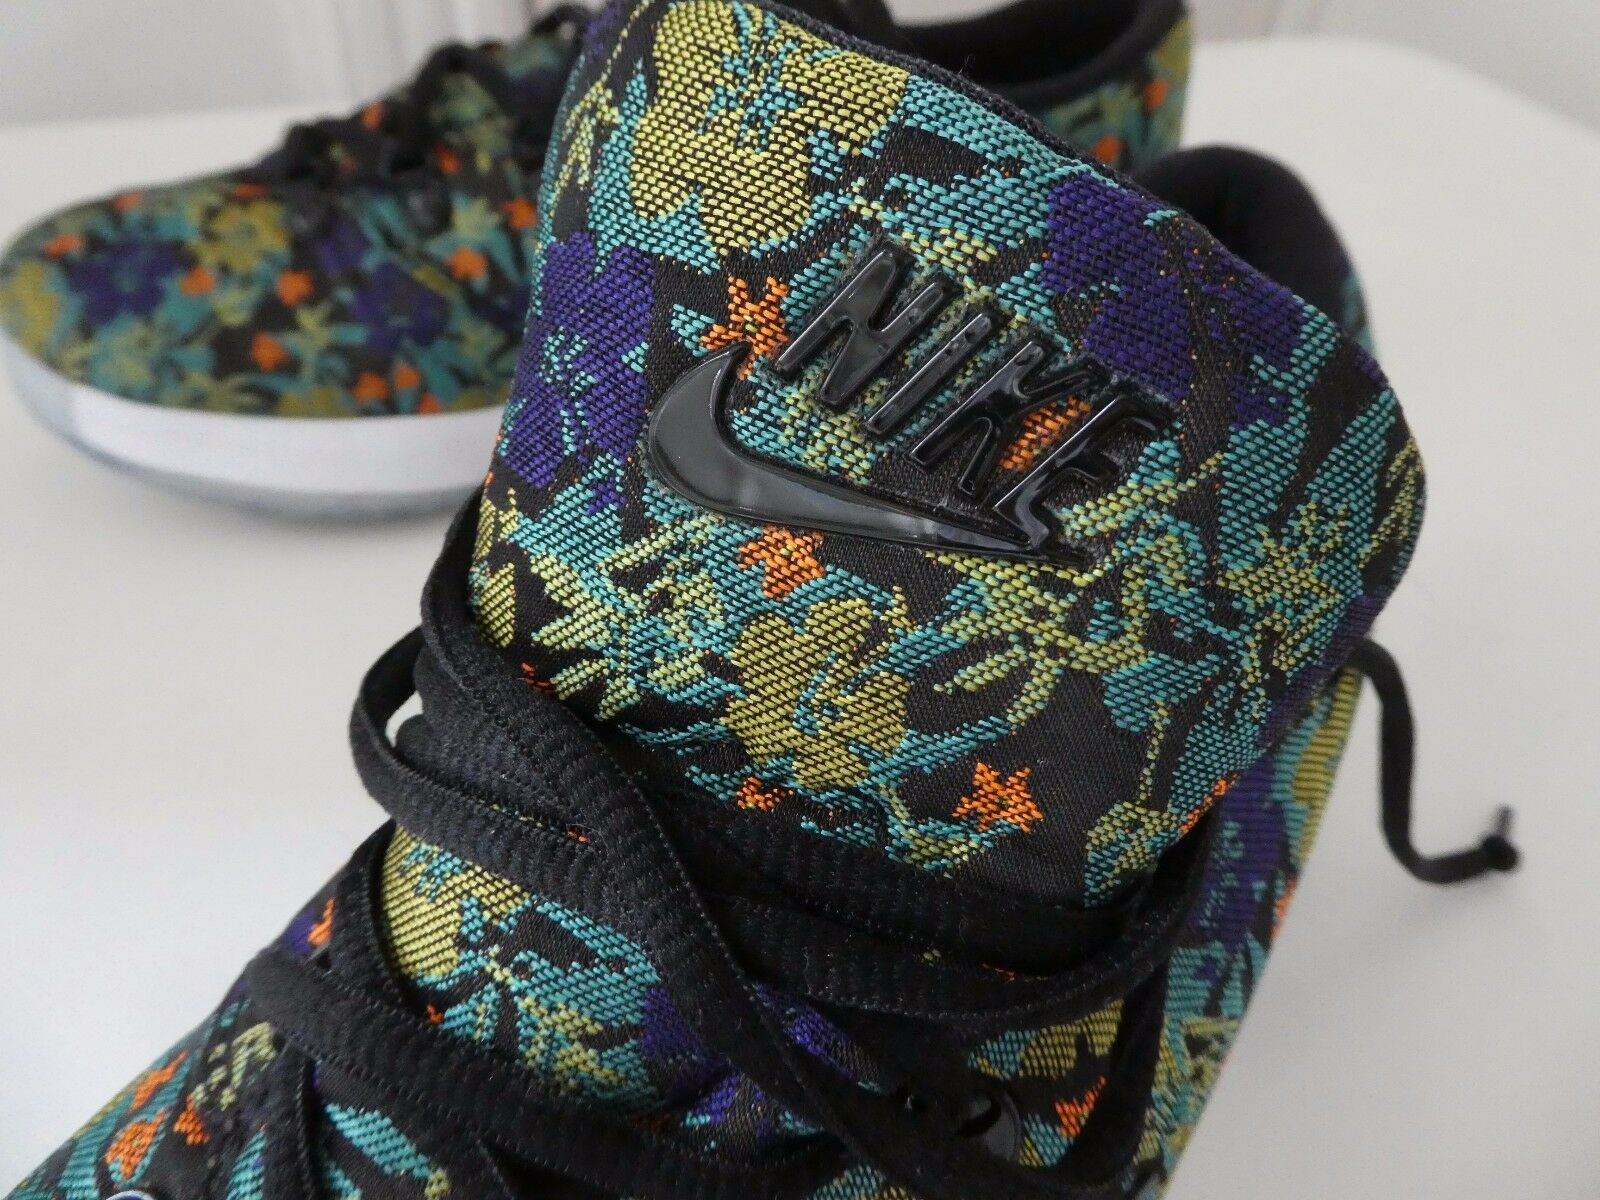 Nike Kevin Durant Limited Edition KD 6 Floral, Size US 9 Eur 42.5, 652120-900